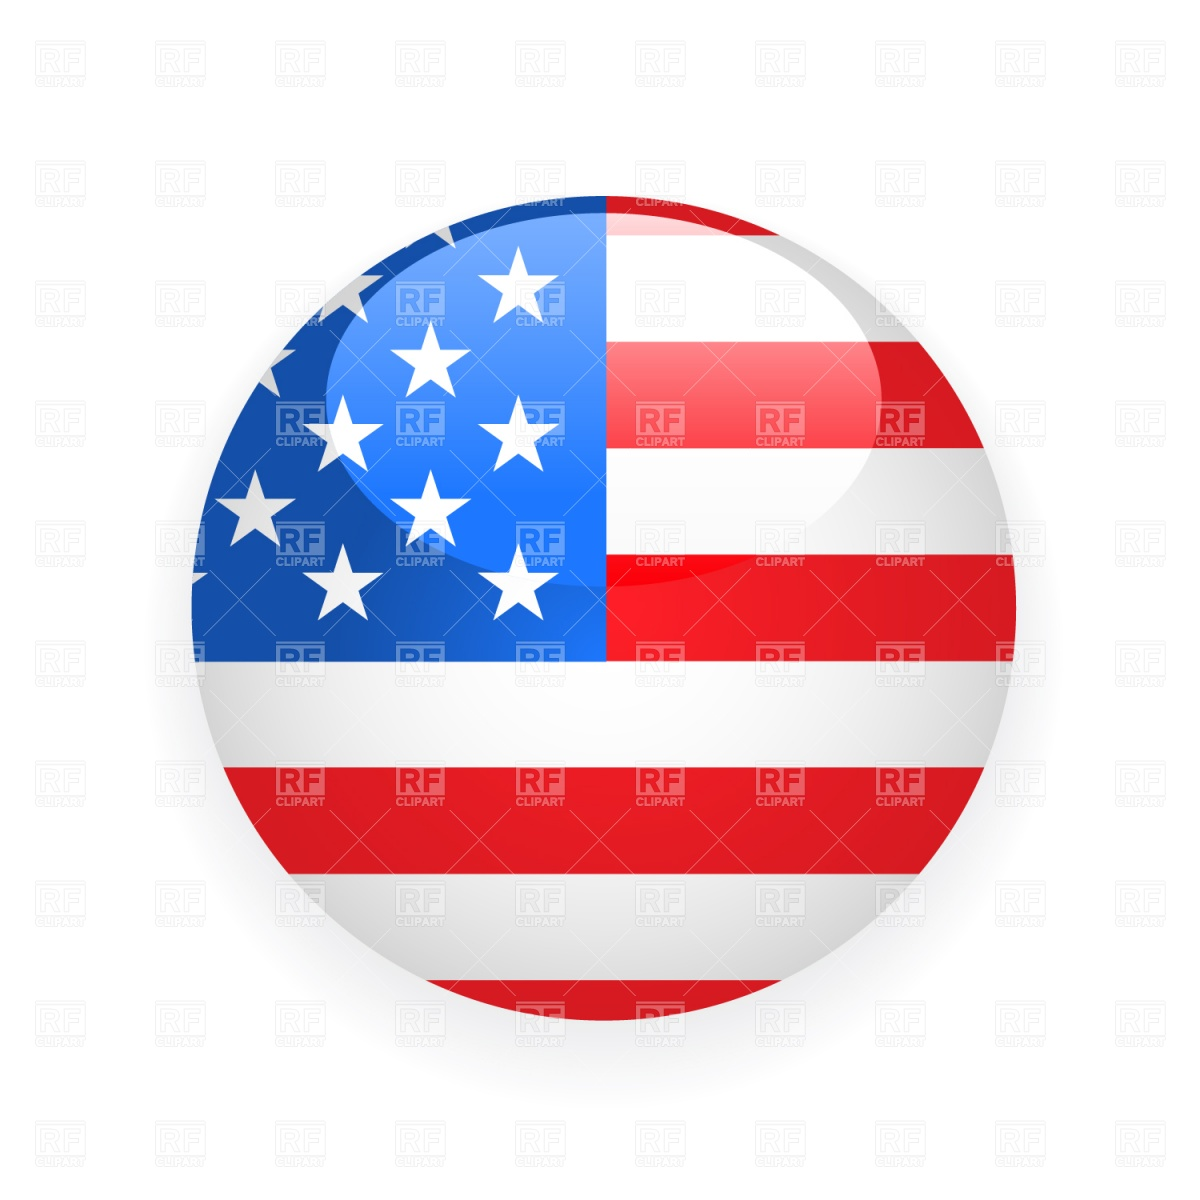 American consulate clipart graphic freeuse Notary Services for USA Documents - Beverly Carter Notary Public graphic freeuse